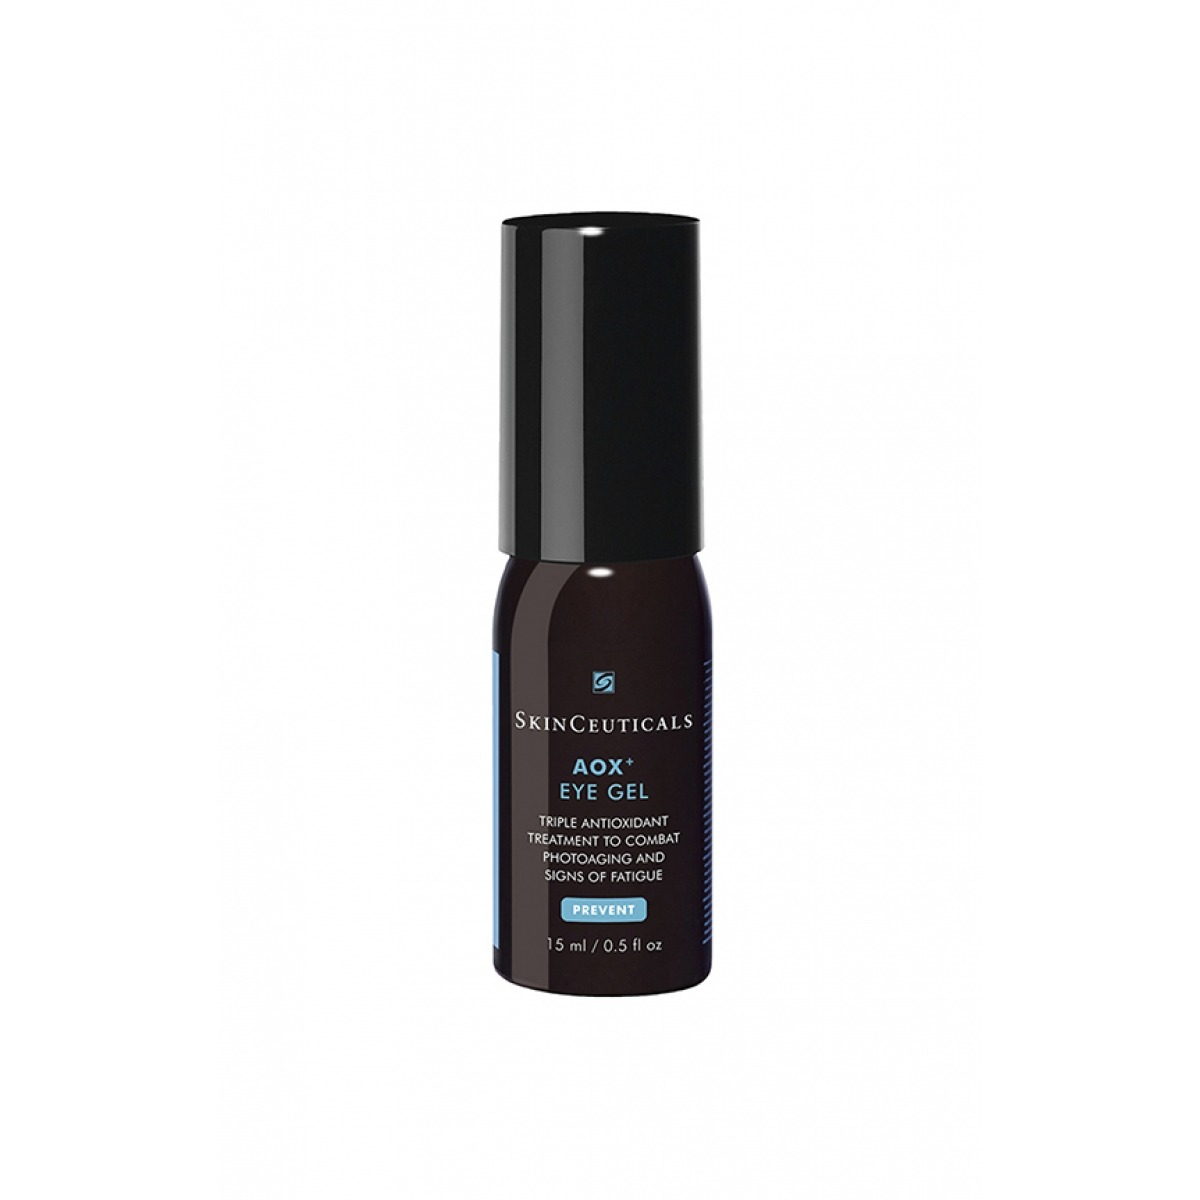 SKINCEUTICALS PREVENT AOX EYE GEL 15 ML